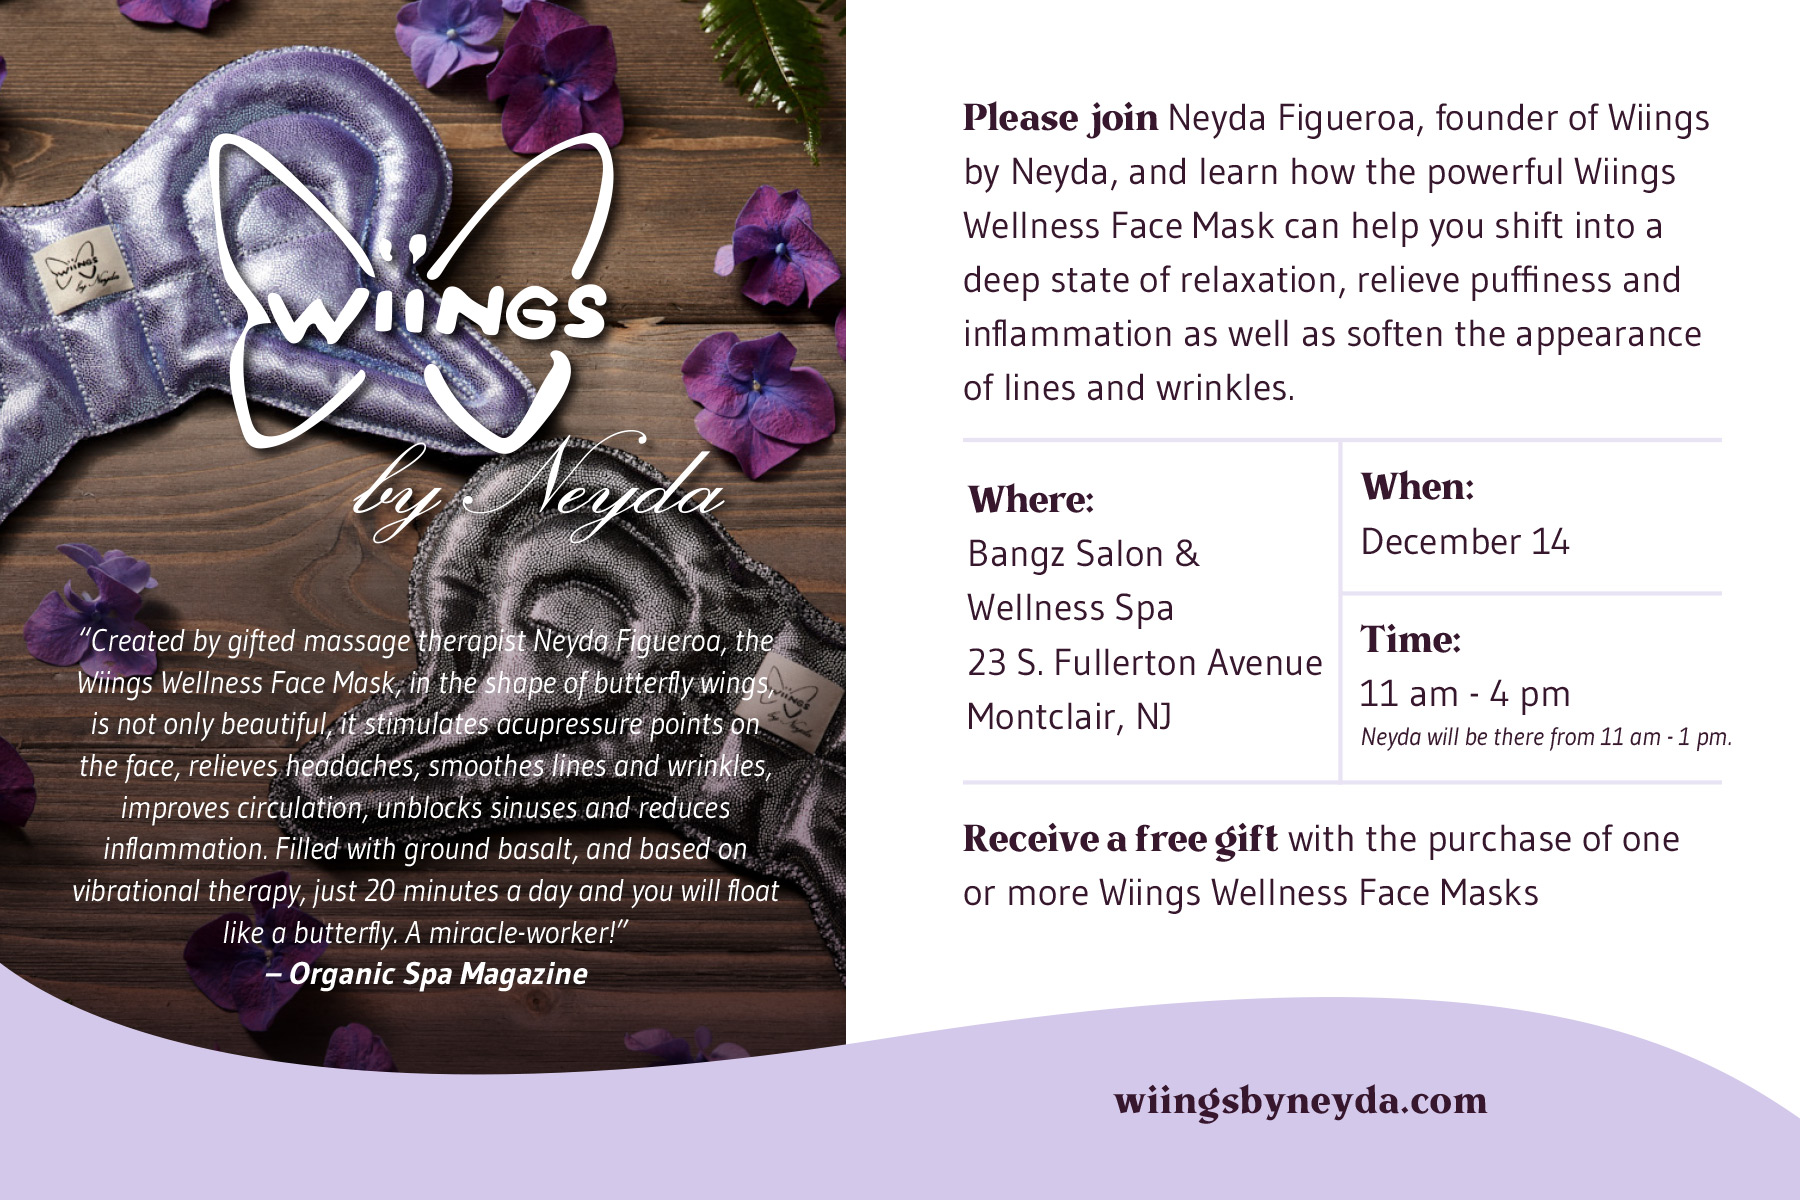 Wiings Special Event - December 14th, 2019